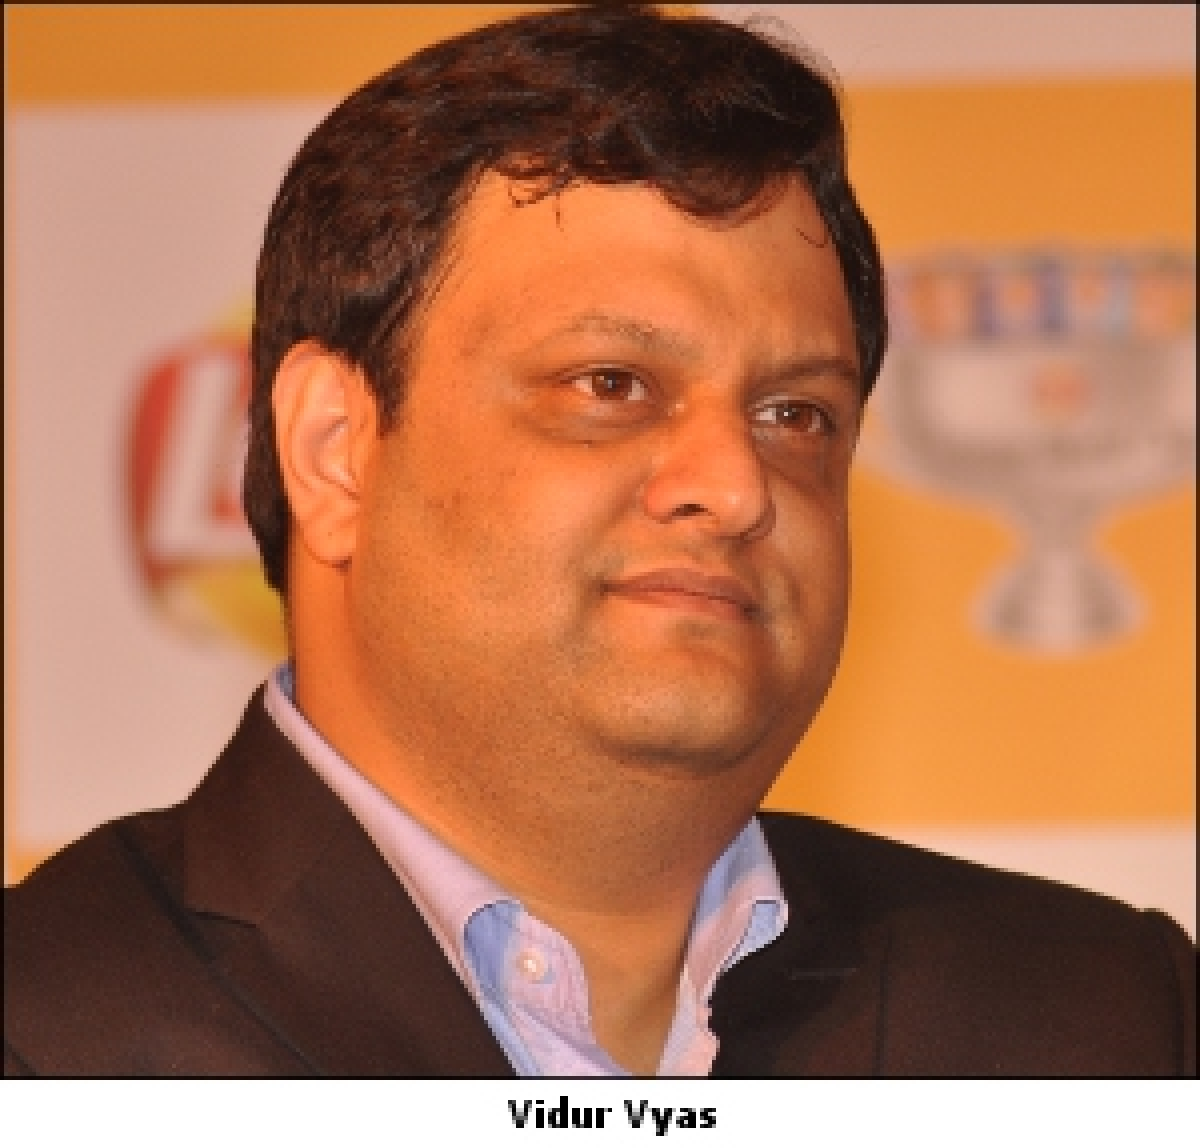 PepsiCo's Vidur Vyas joins Hike Messenger as VP, Marketing